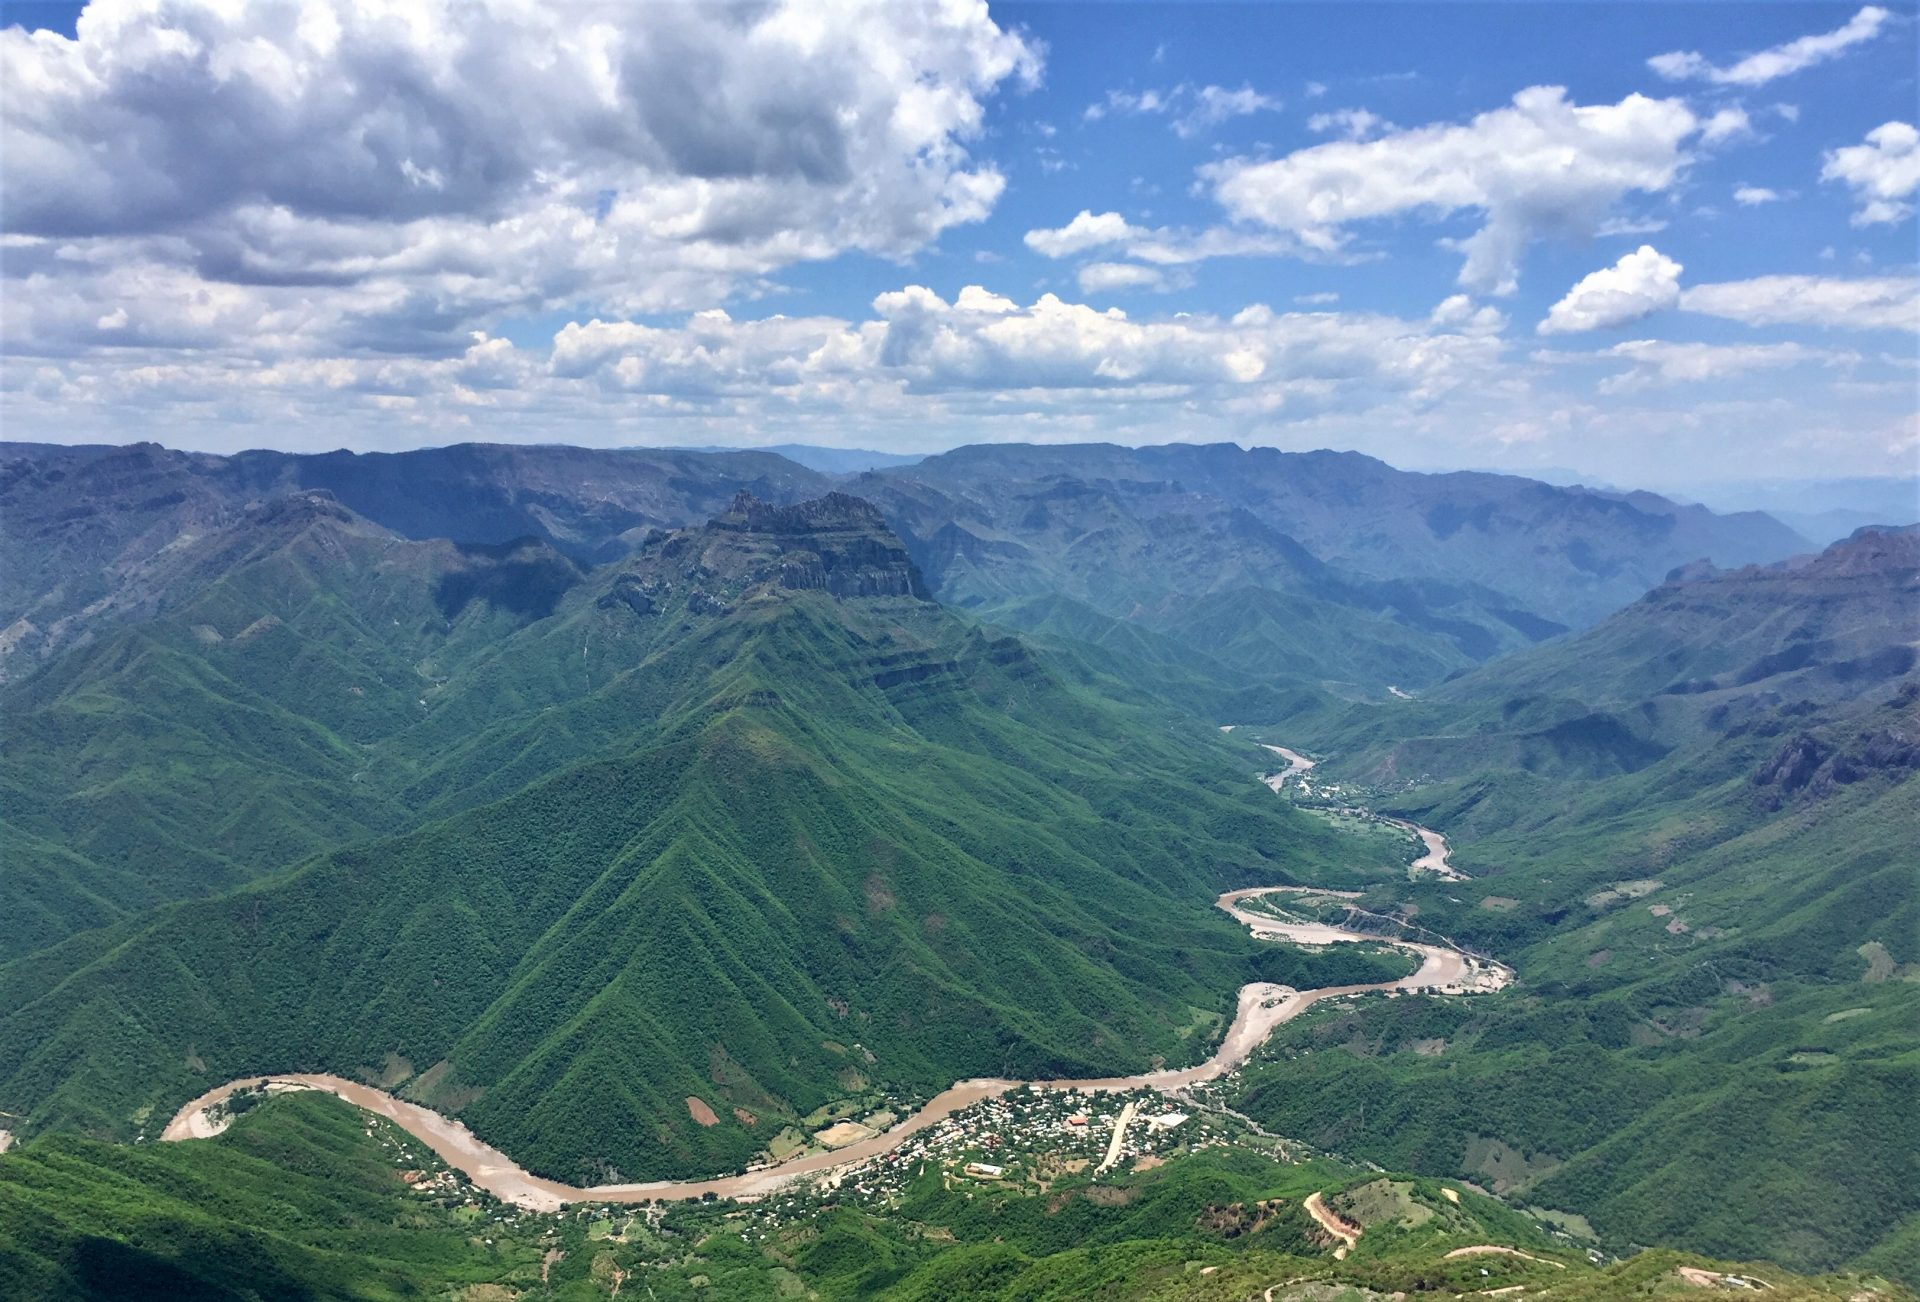 Copper Canyon Part 2 (July 9 to 11)